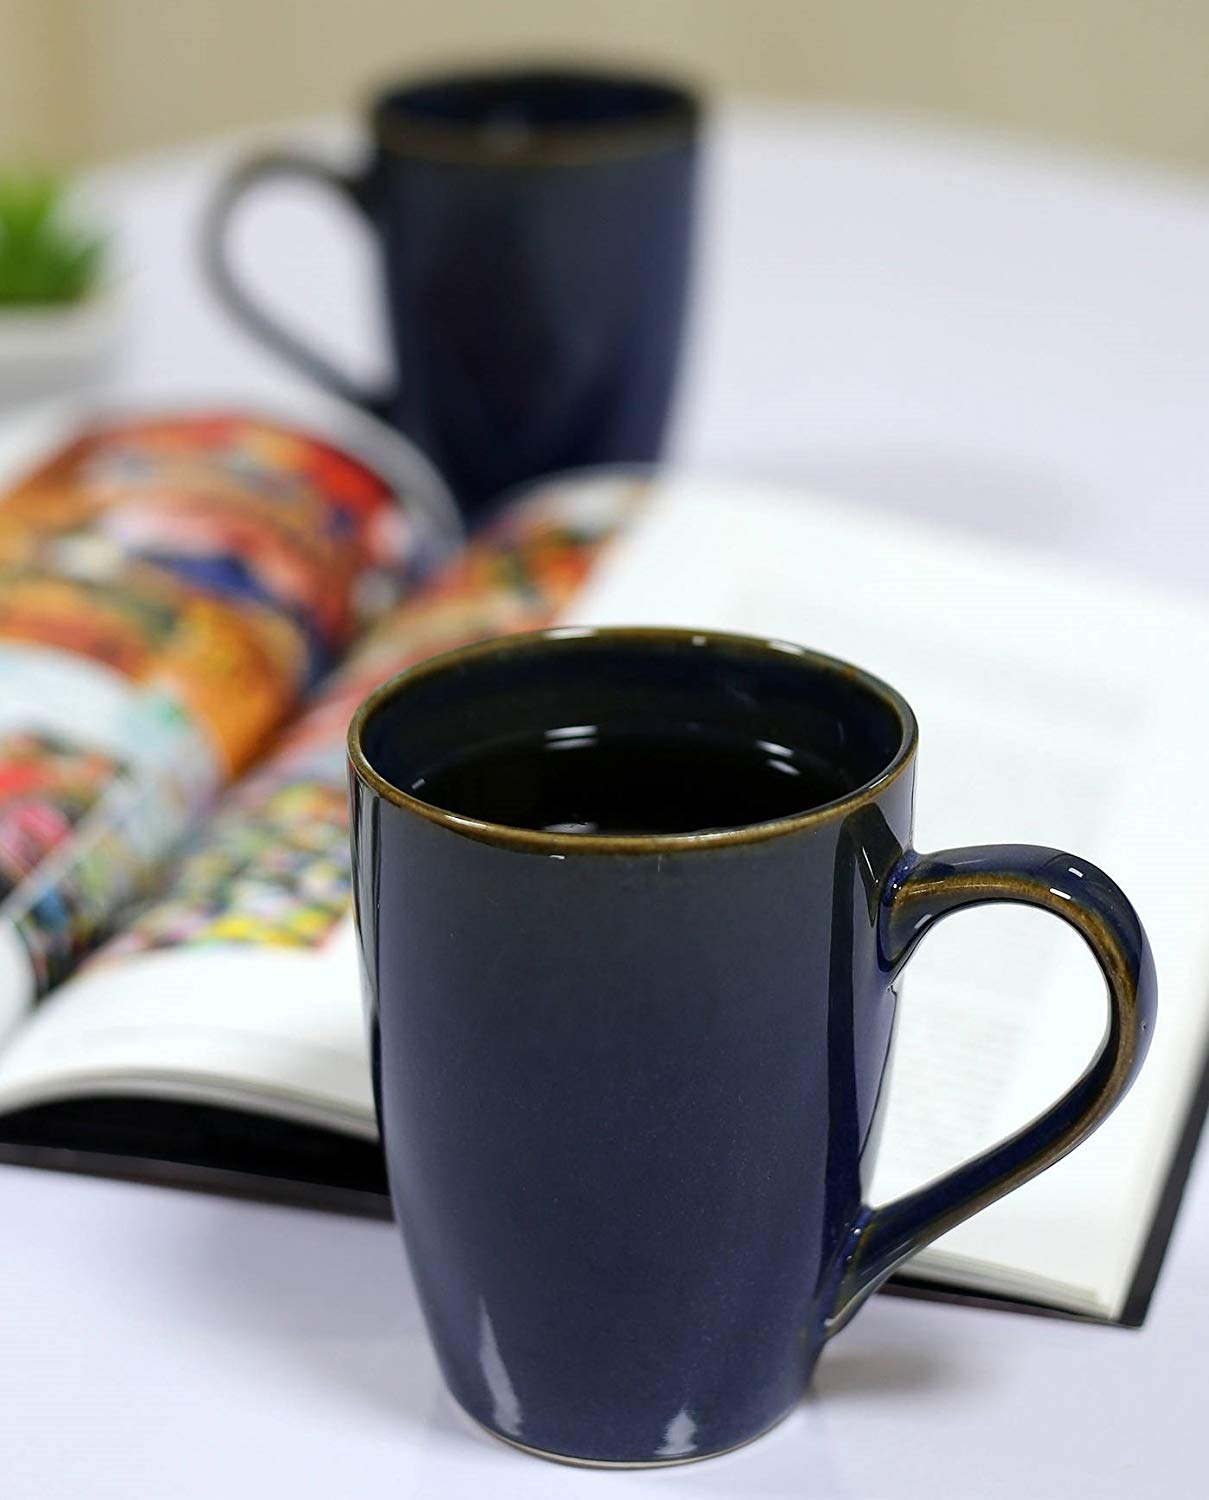 Coffee Mug for office - Desk Accessories